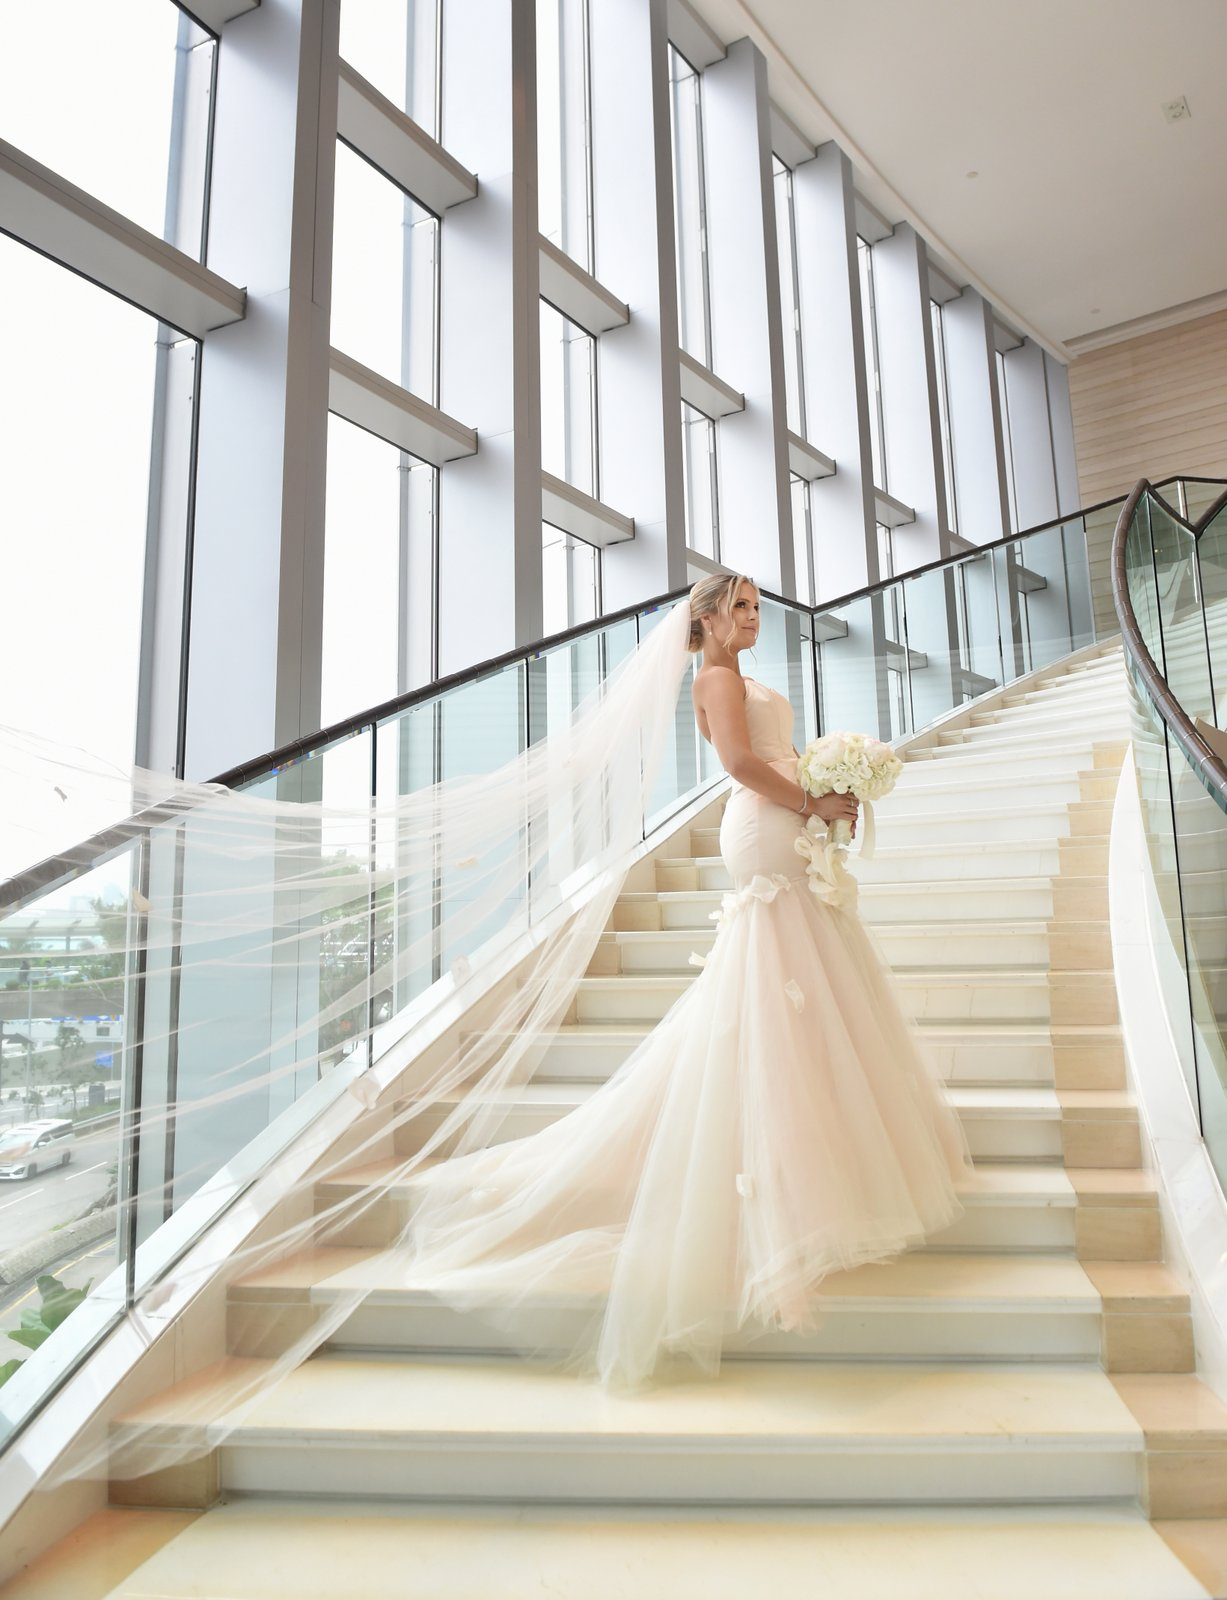 Bride in long white dress on stair case